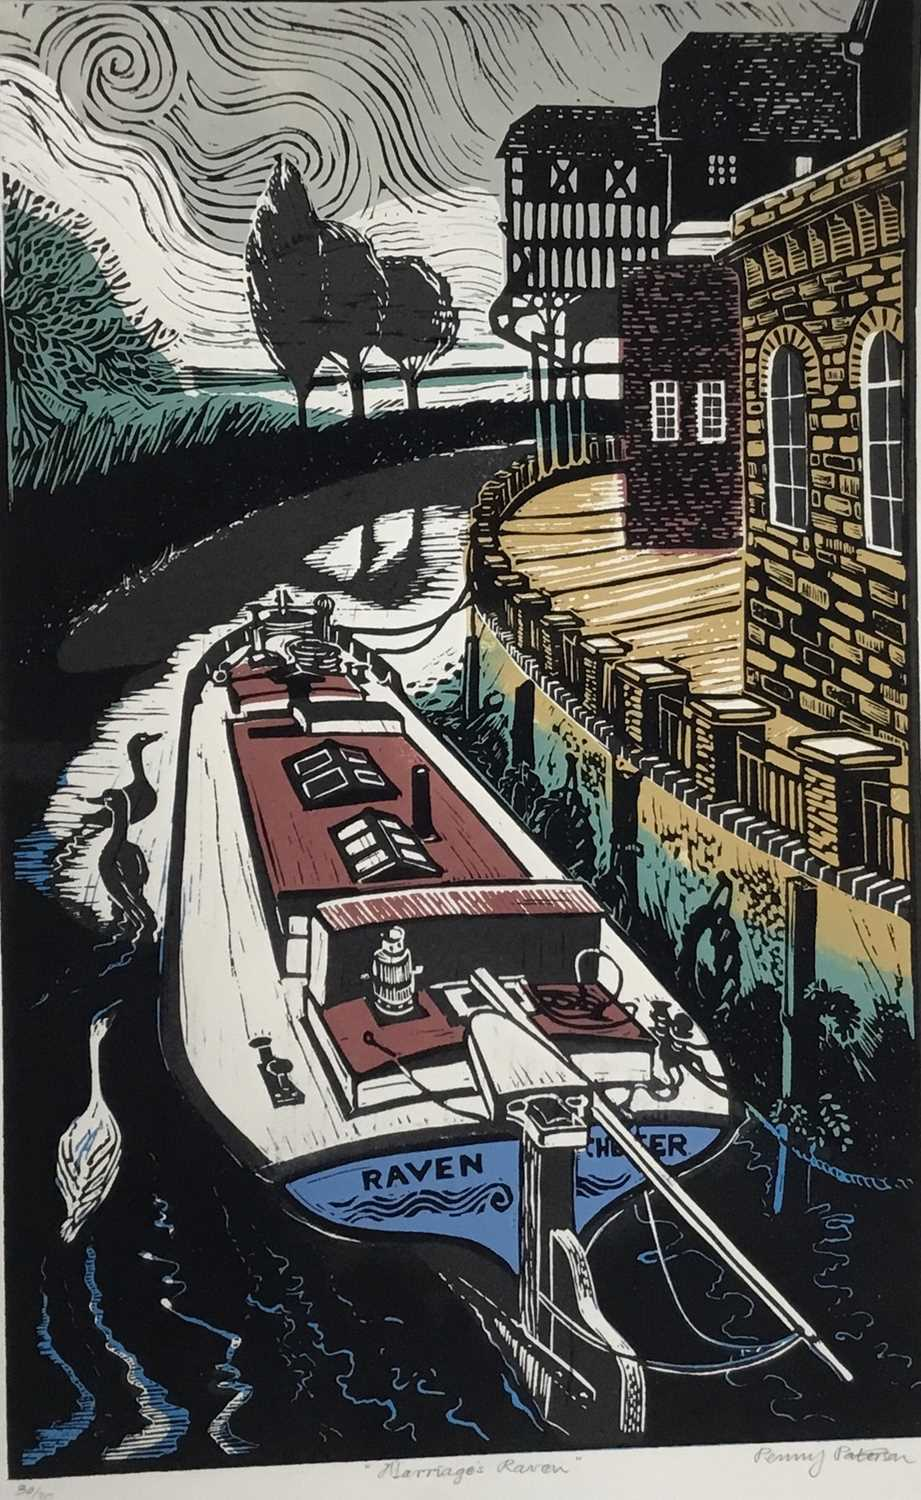 Penny Berry Paterson (1941-2021) colour linocut print, Marriages Raven, signed and numbered 30/30, 4